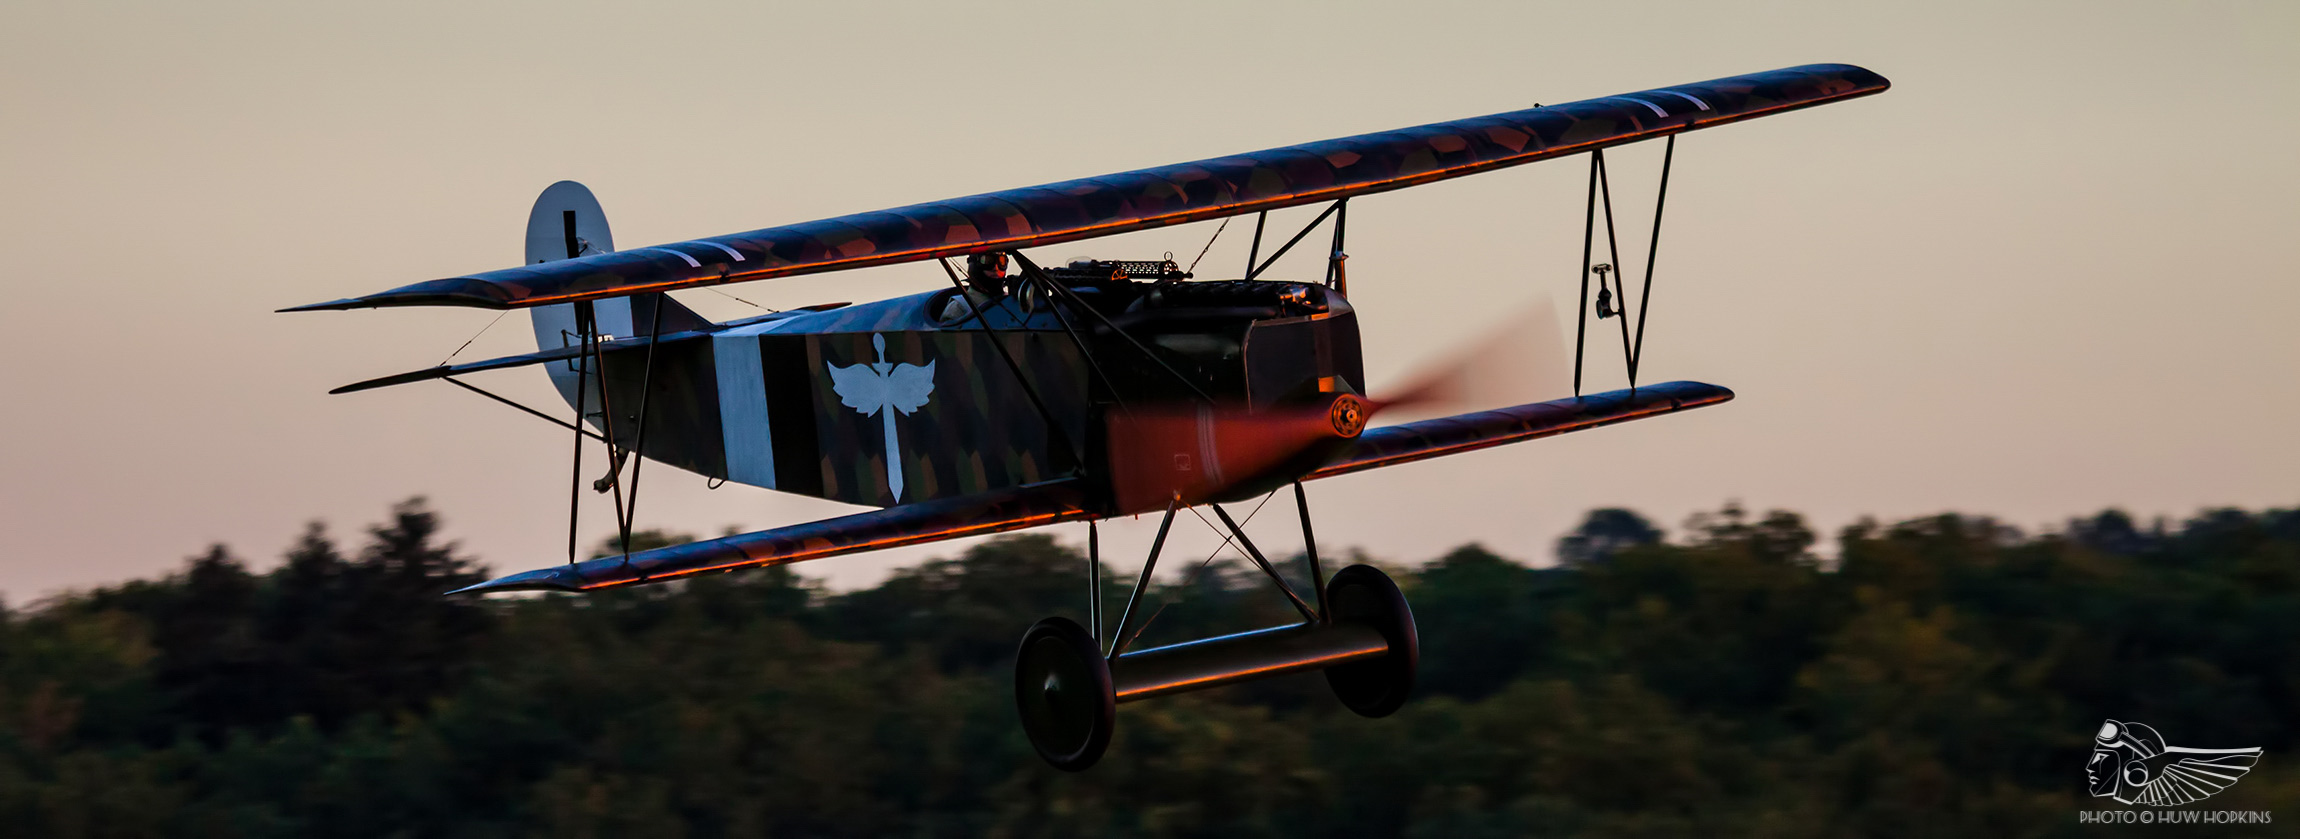 Recreating the Fokker D.VII